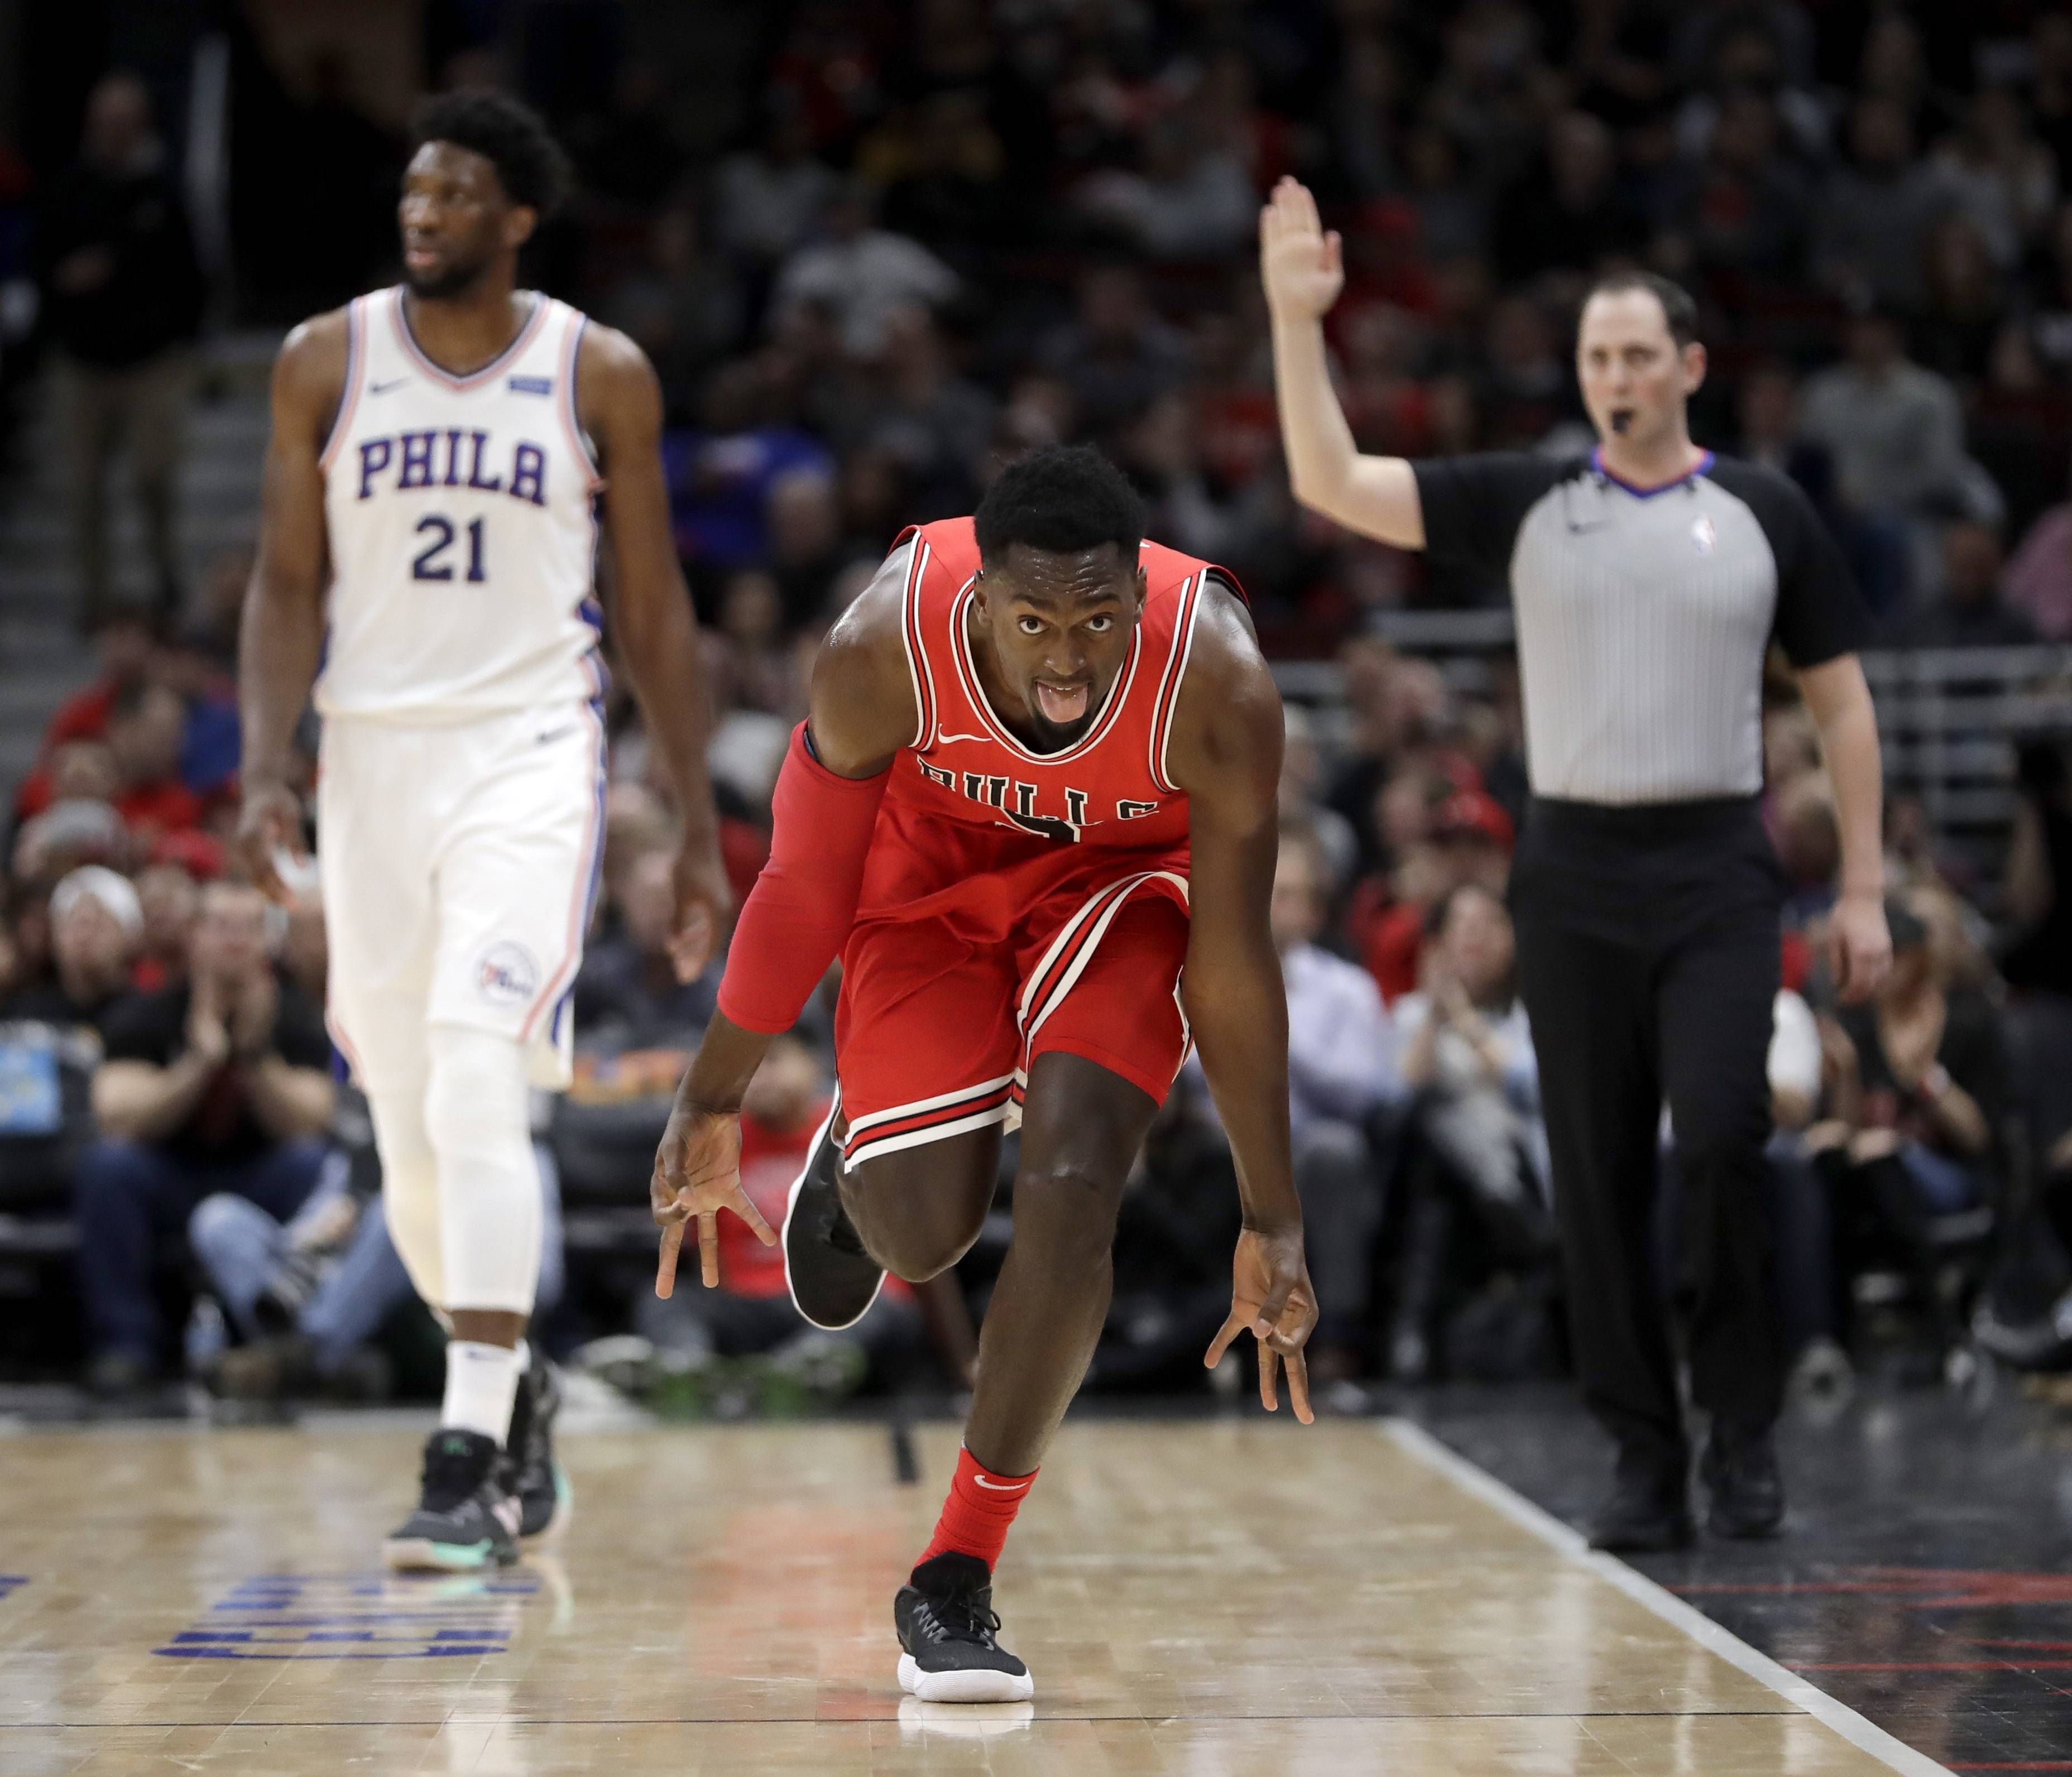 Chicago Bulls' Bobby Portis expresses his delight after scoring a three-point shot over Philadelphia 76ers' Joel Embiid, left, during the first half of Thursday's game at the United Center. Portis had 38 points and pumped up the crowd with his energy.